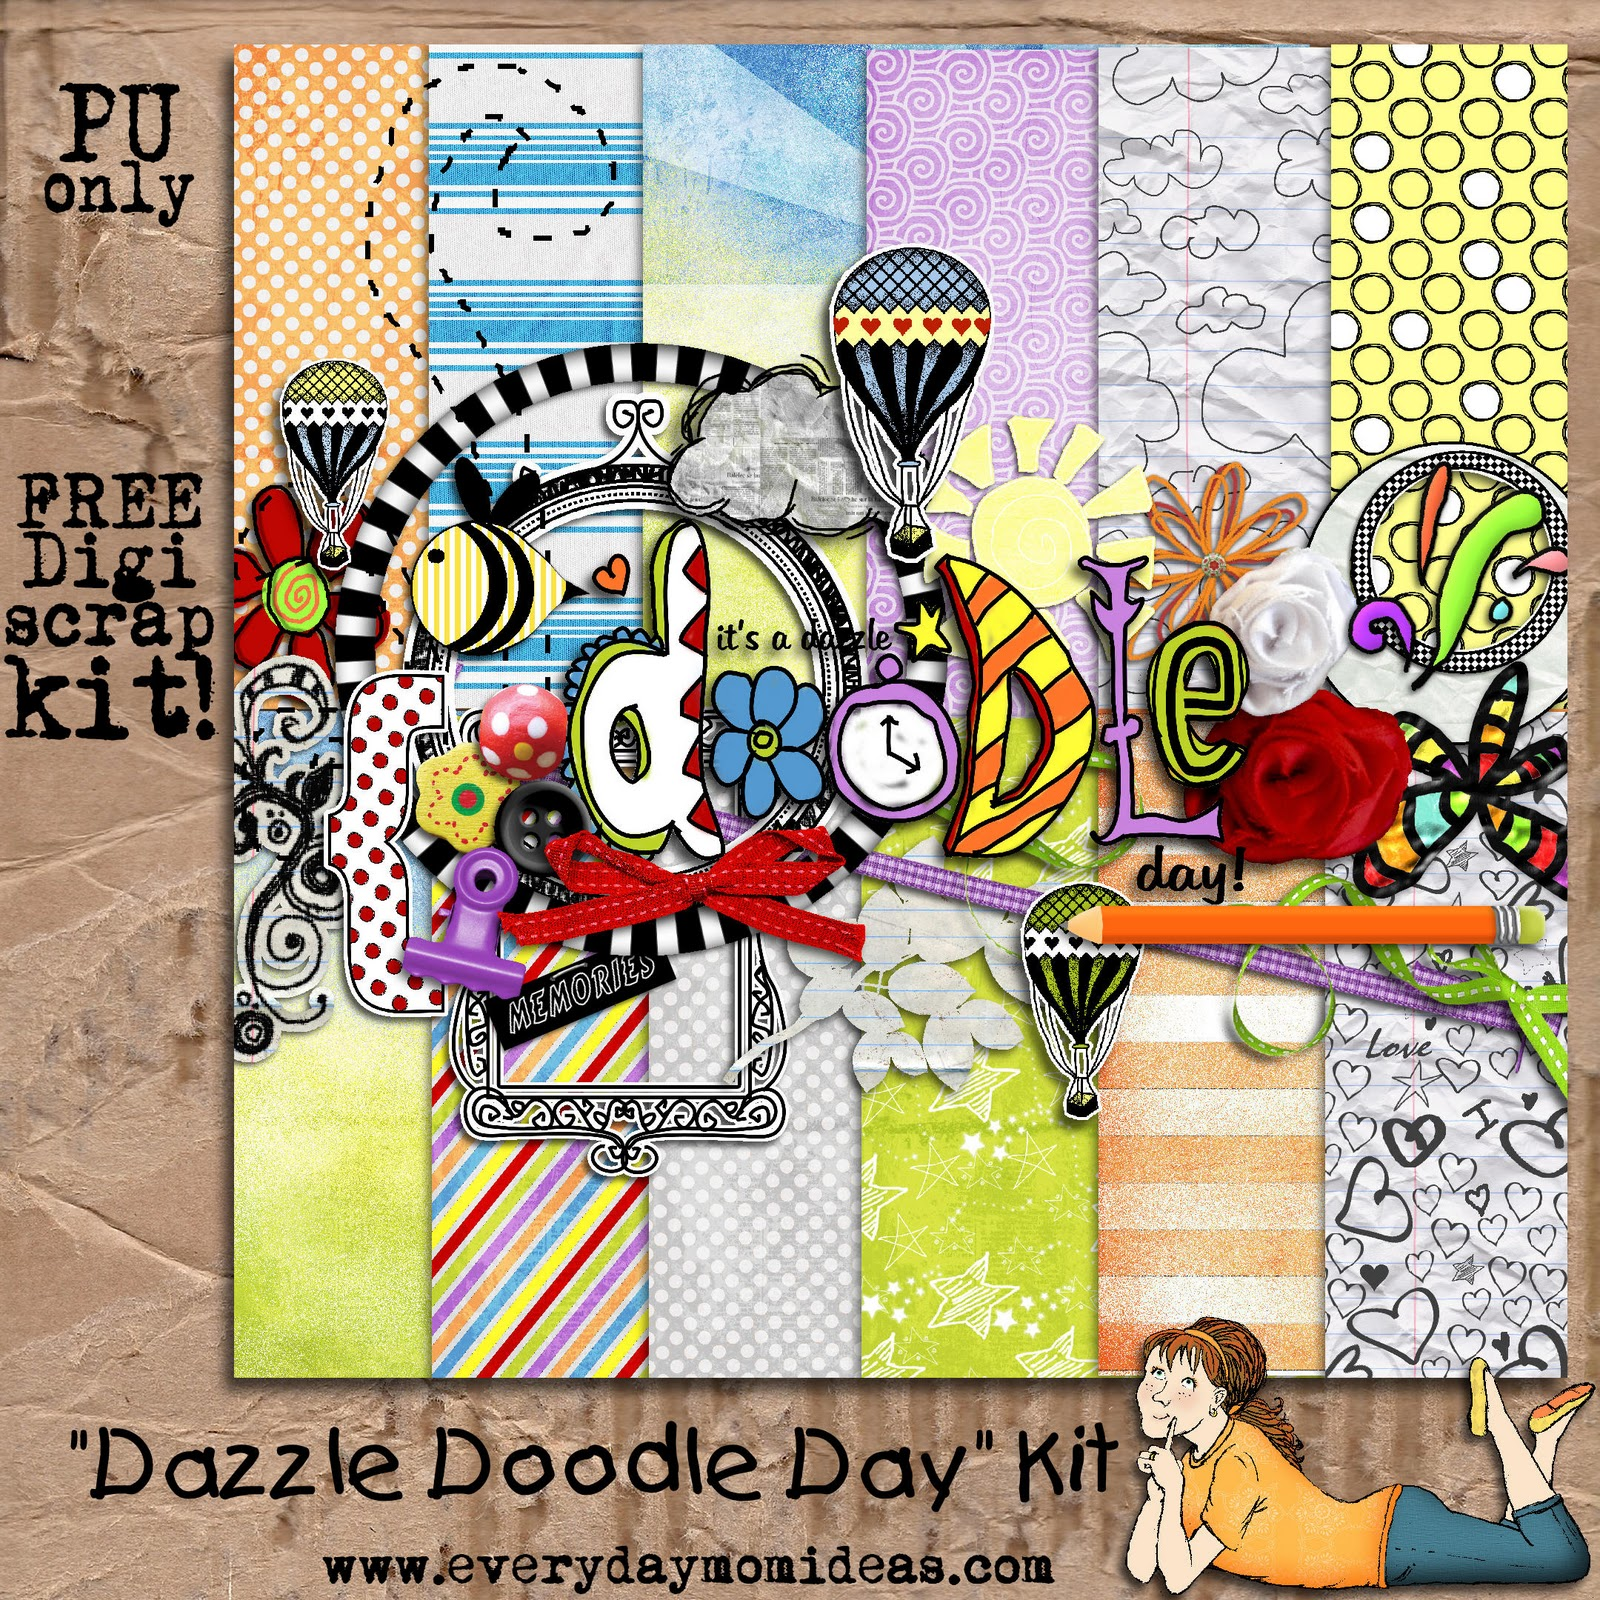 This QP was created with the Dazzle Doodle Day Kit that is still